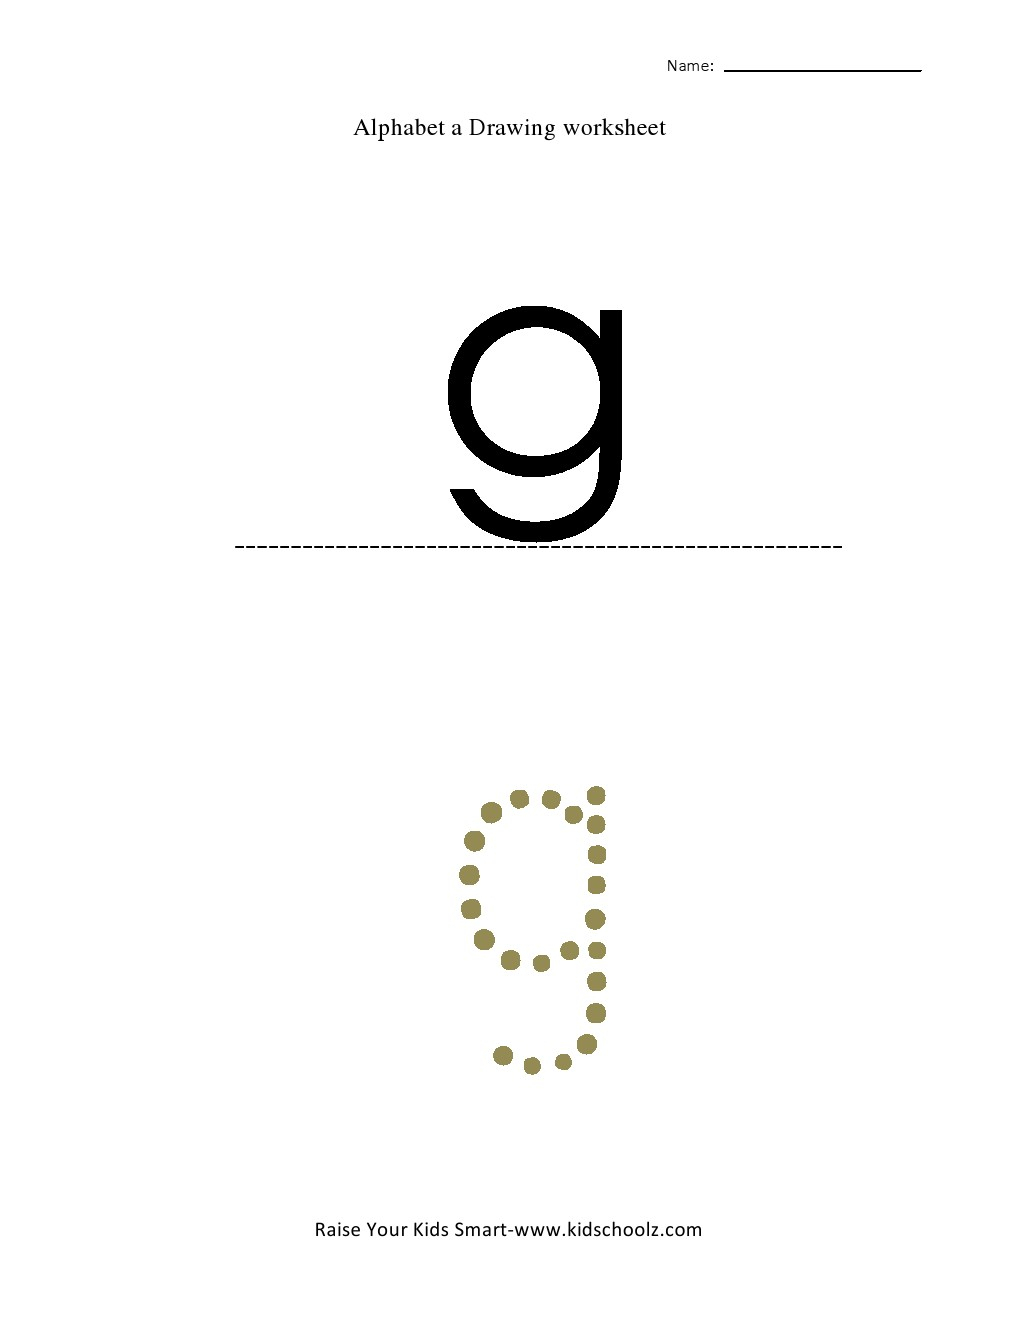 Tracing Small Letter Alphabets - G - Kidschoolz regarding Tracing Small Letter G Worksheet